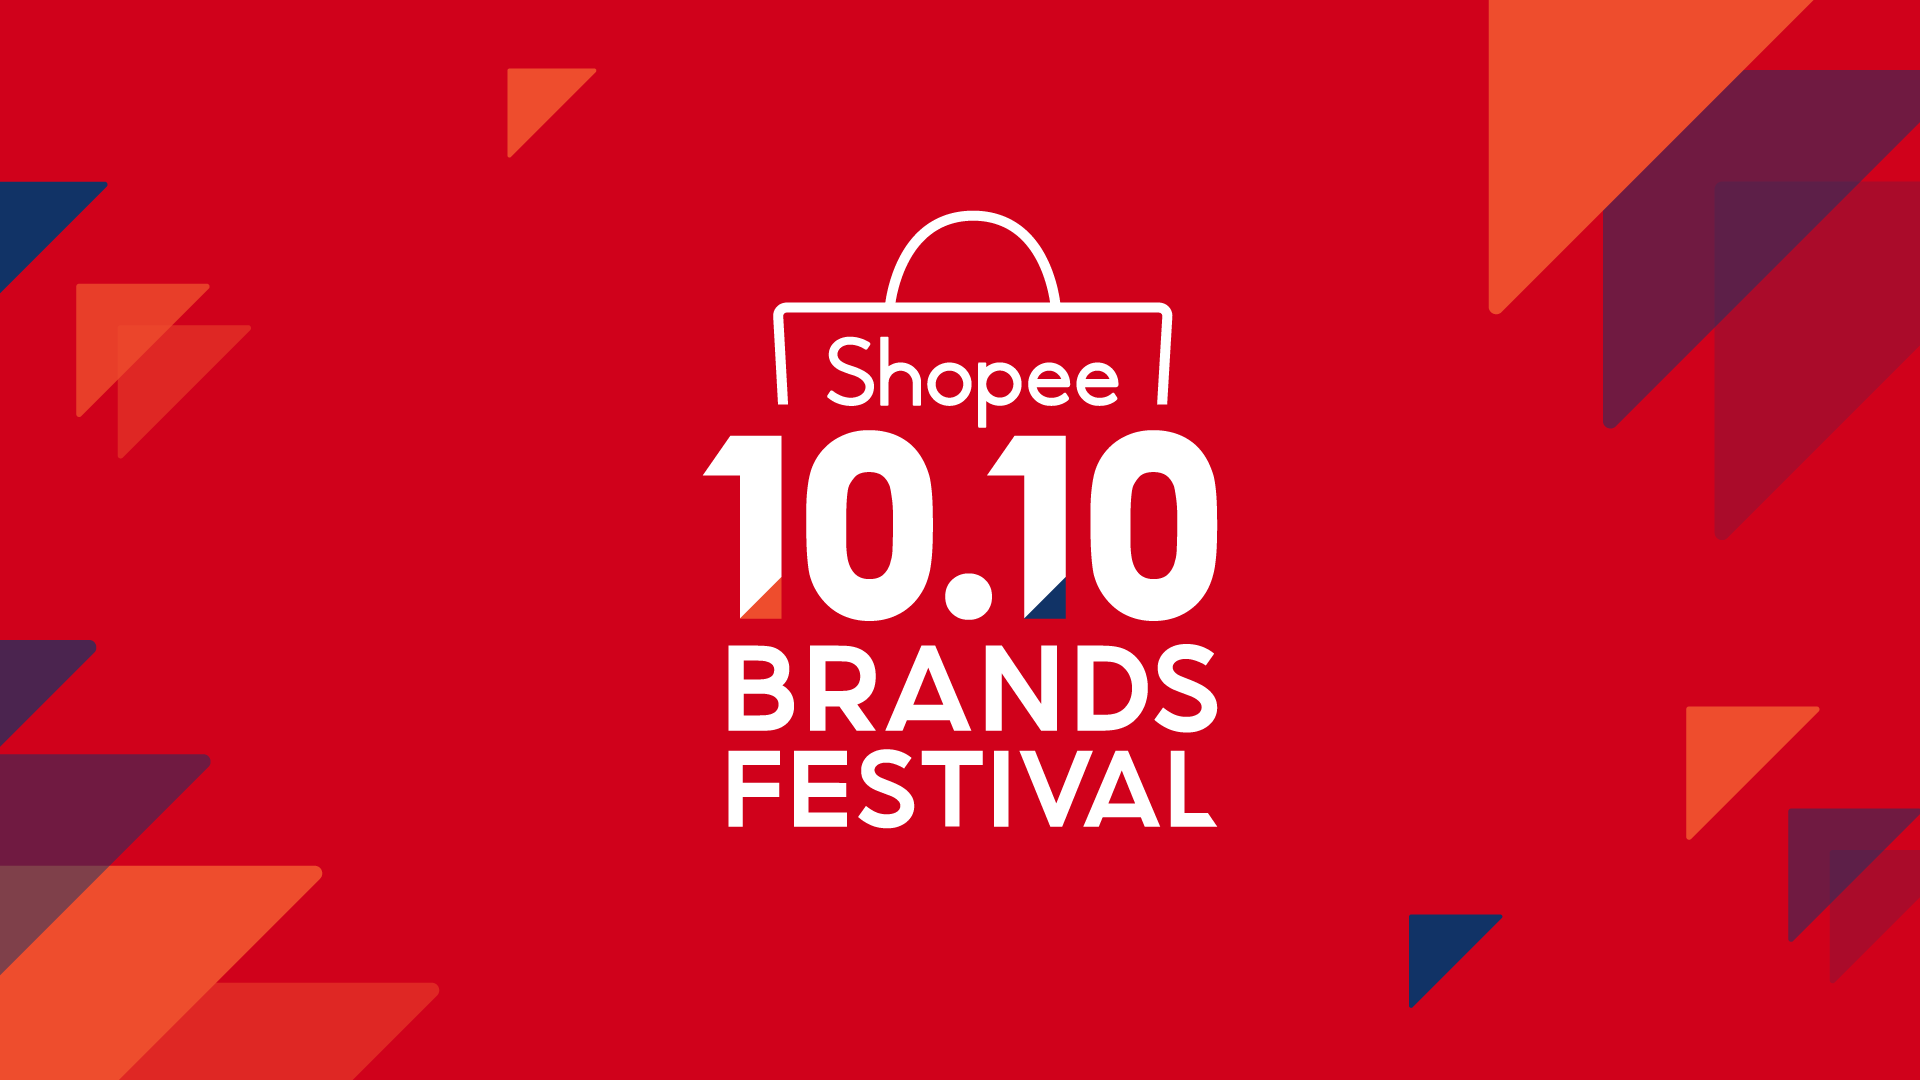 Shopee To Enhance Brand Support Starting This 10.10